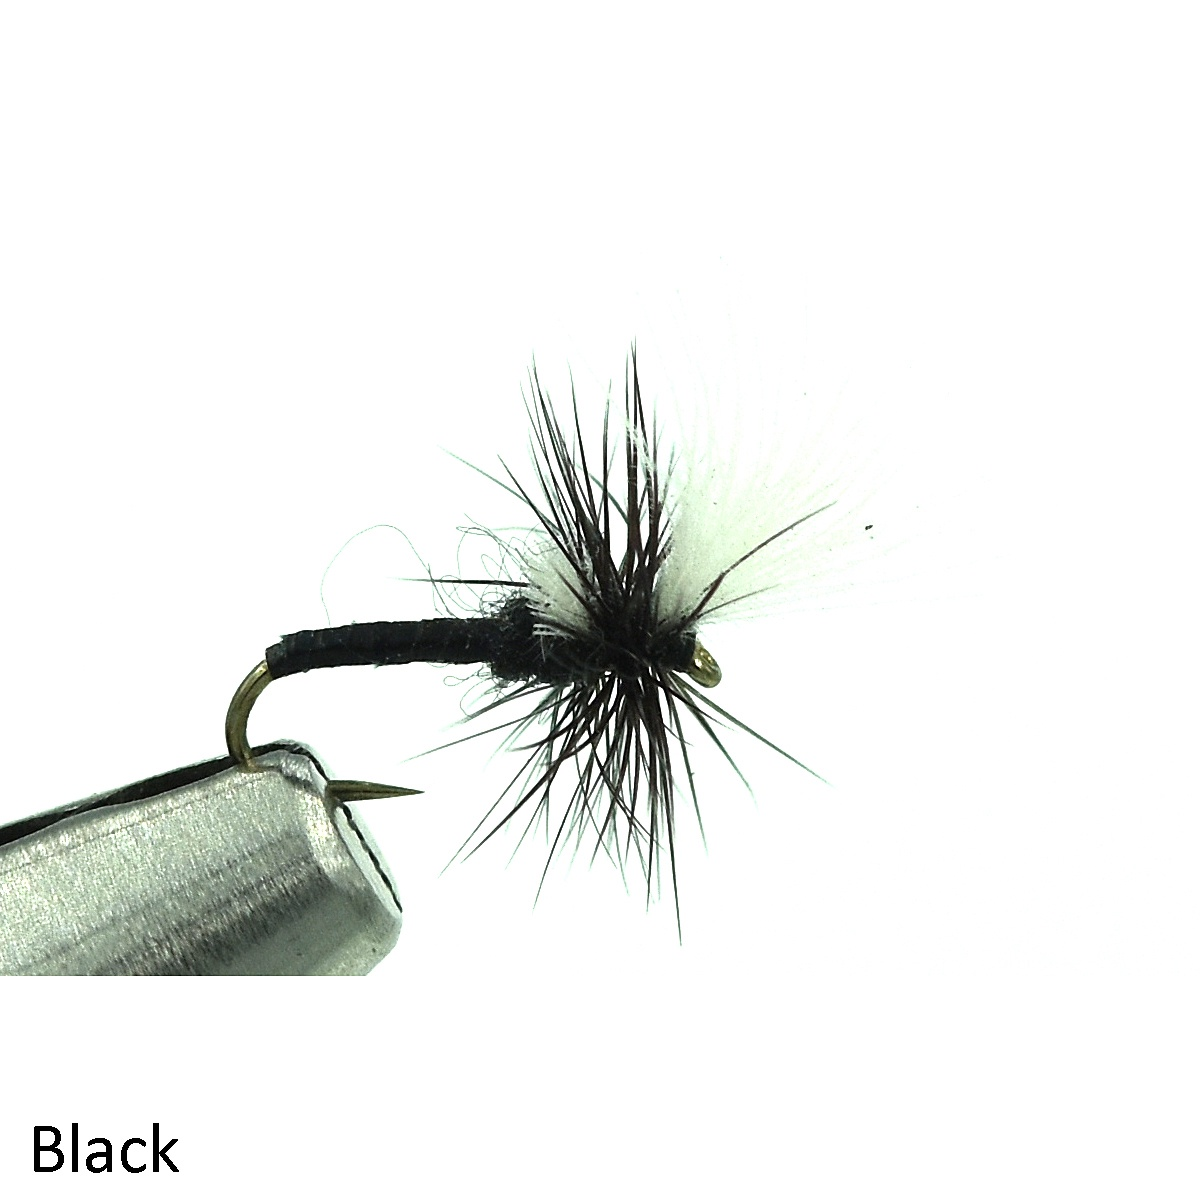 20 or 22 Fly Fishing Solitude Fly Company Hatching Midge Black Size 18